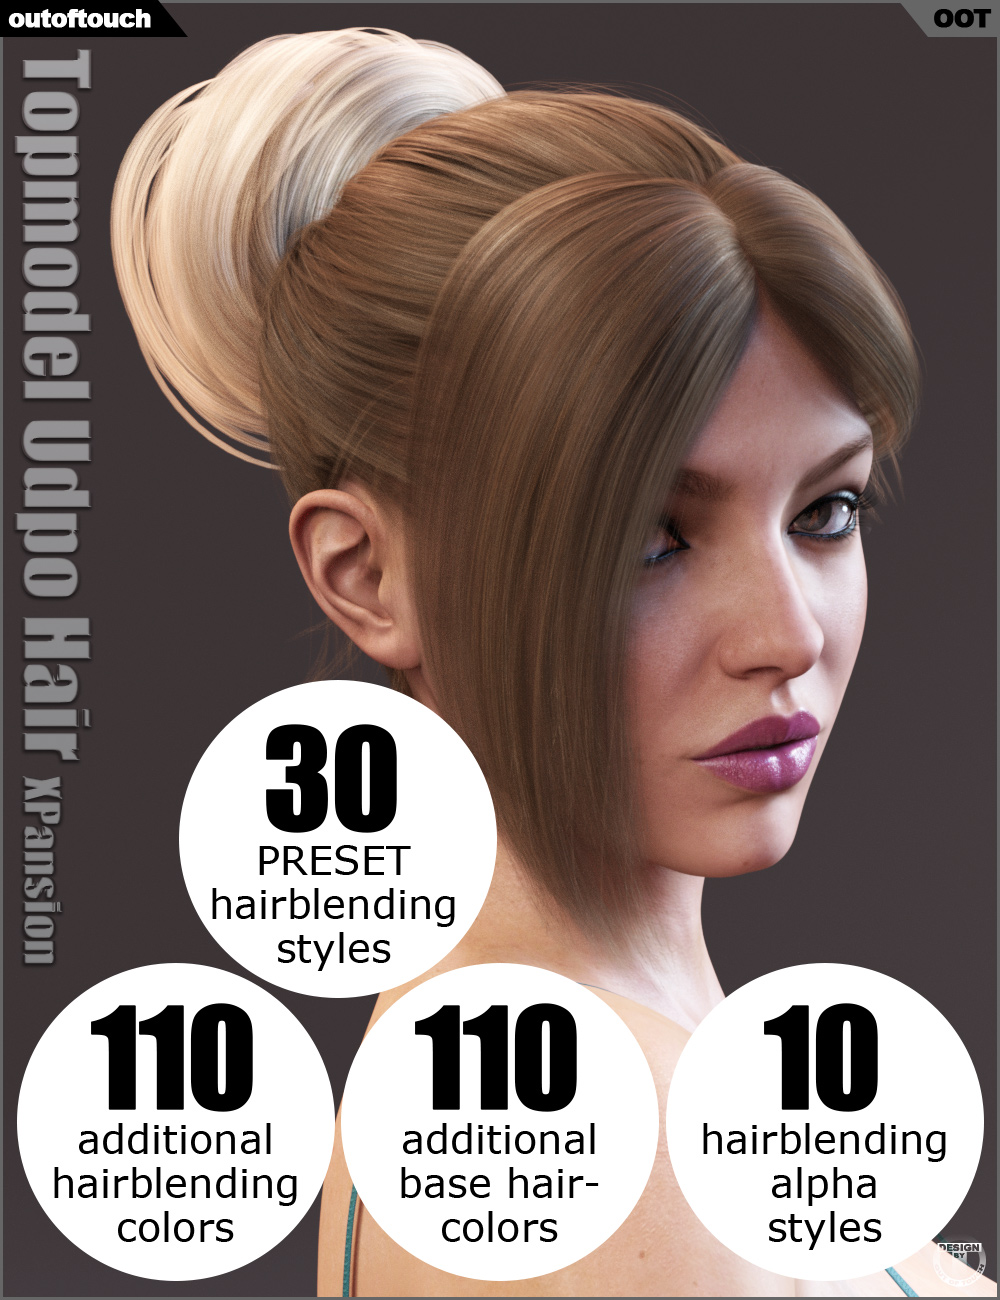 Topmodel Updo Hair and OOT Hairblending 2.0 Texture XPansion by: outoftouch, 3D Models by Daz 3D